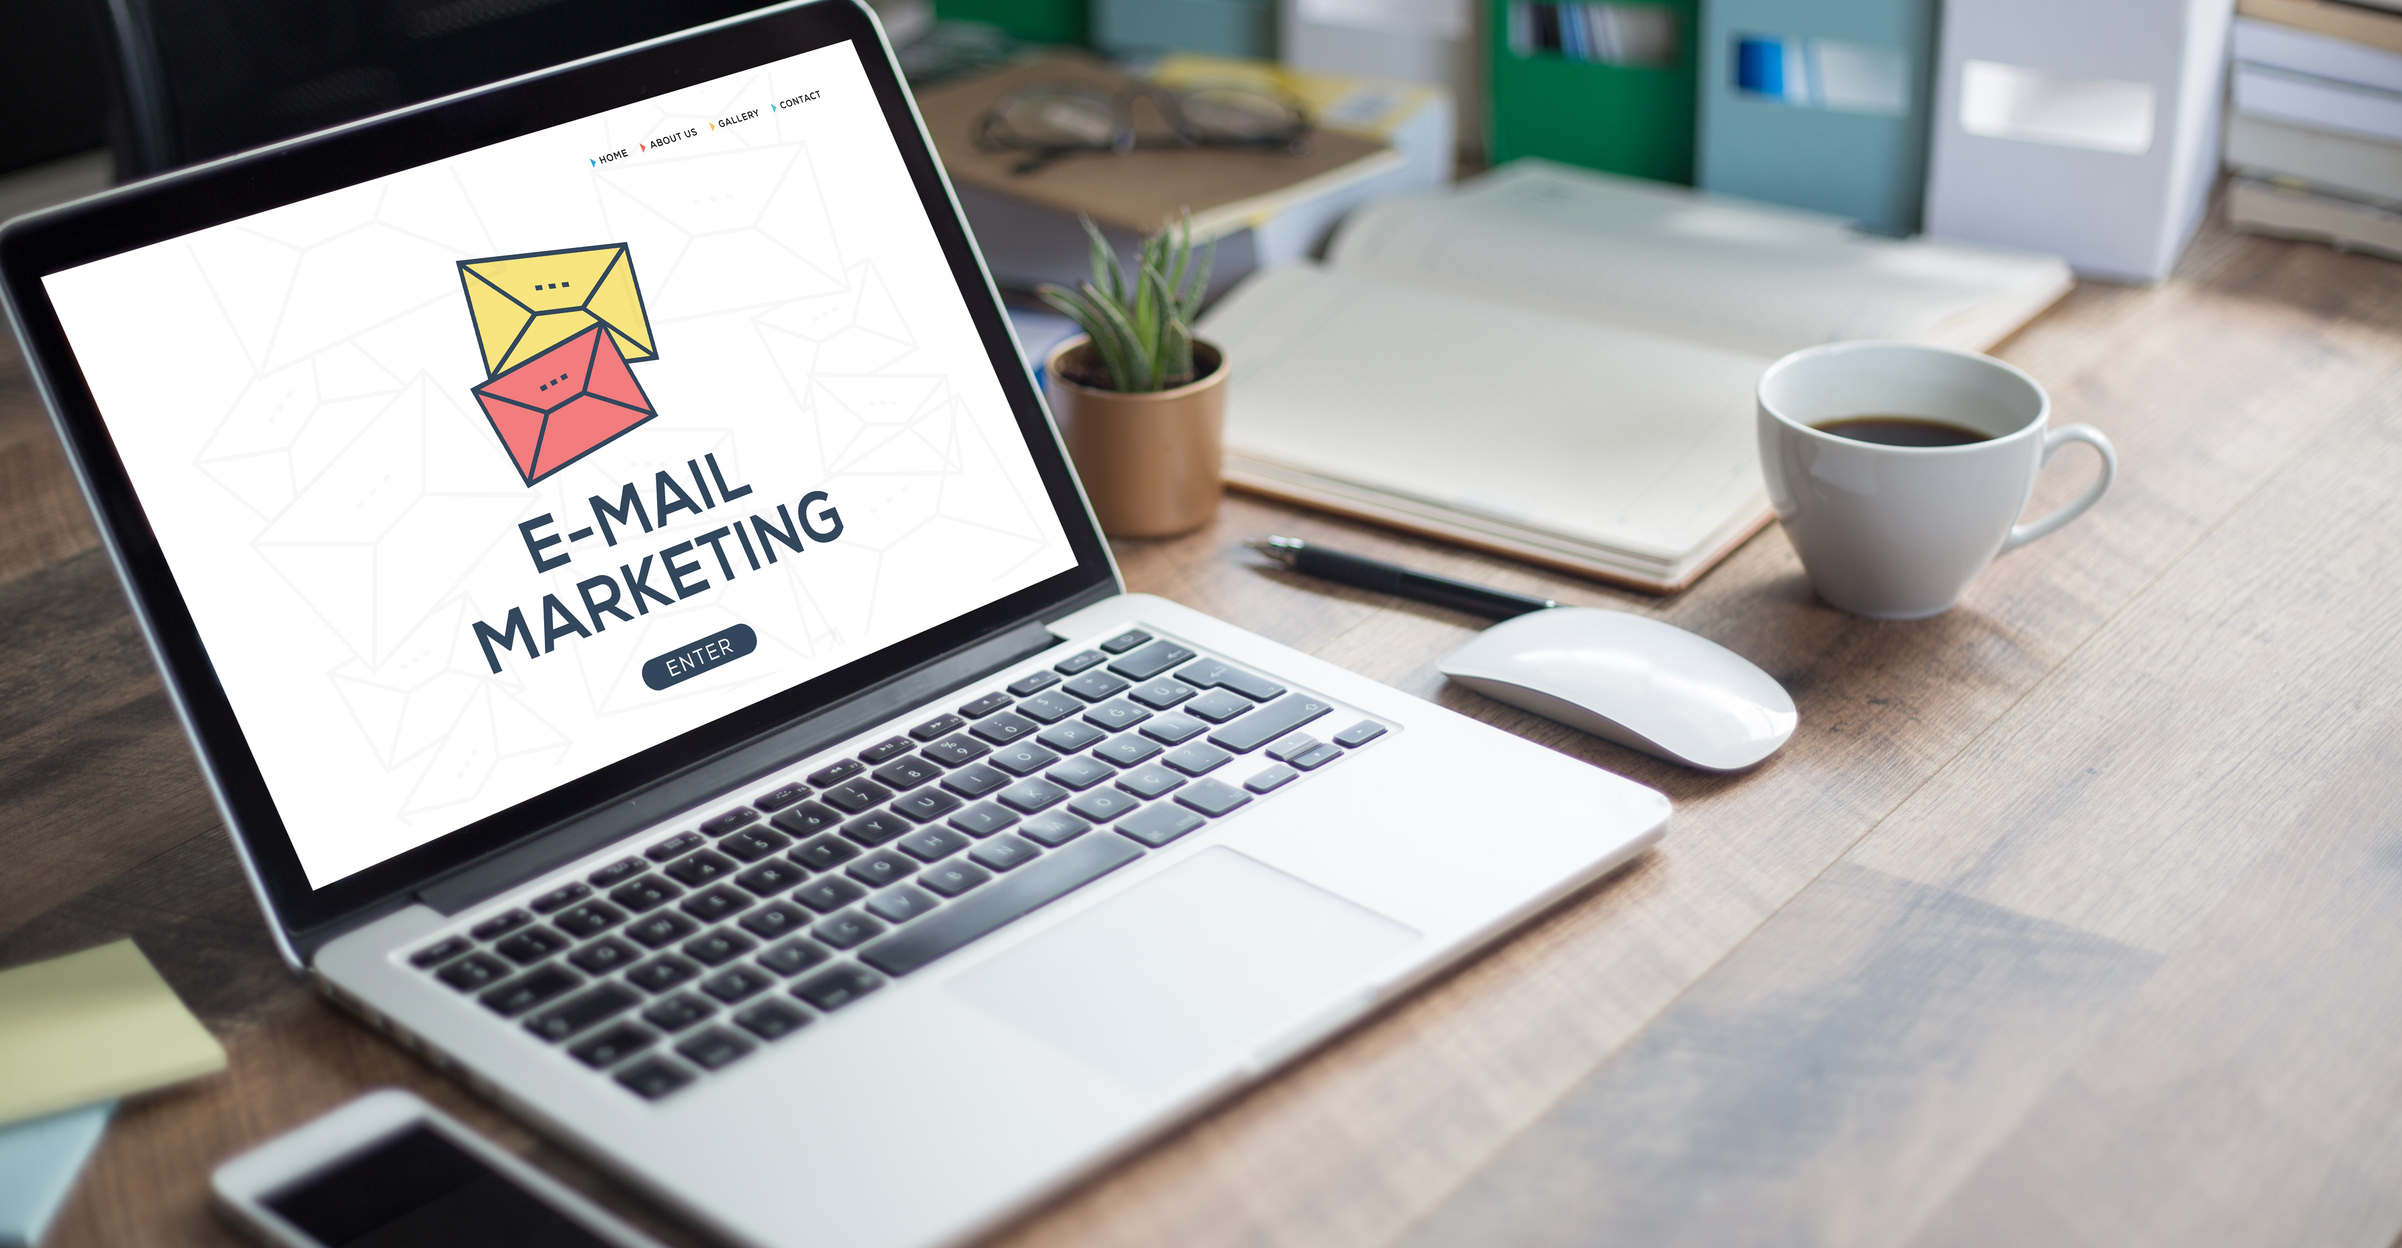 7 CURIOSIDADES SOBRE E-MAIL MARKETING